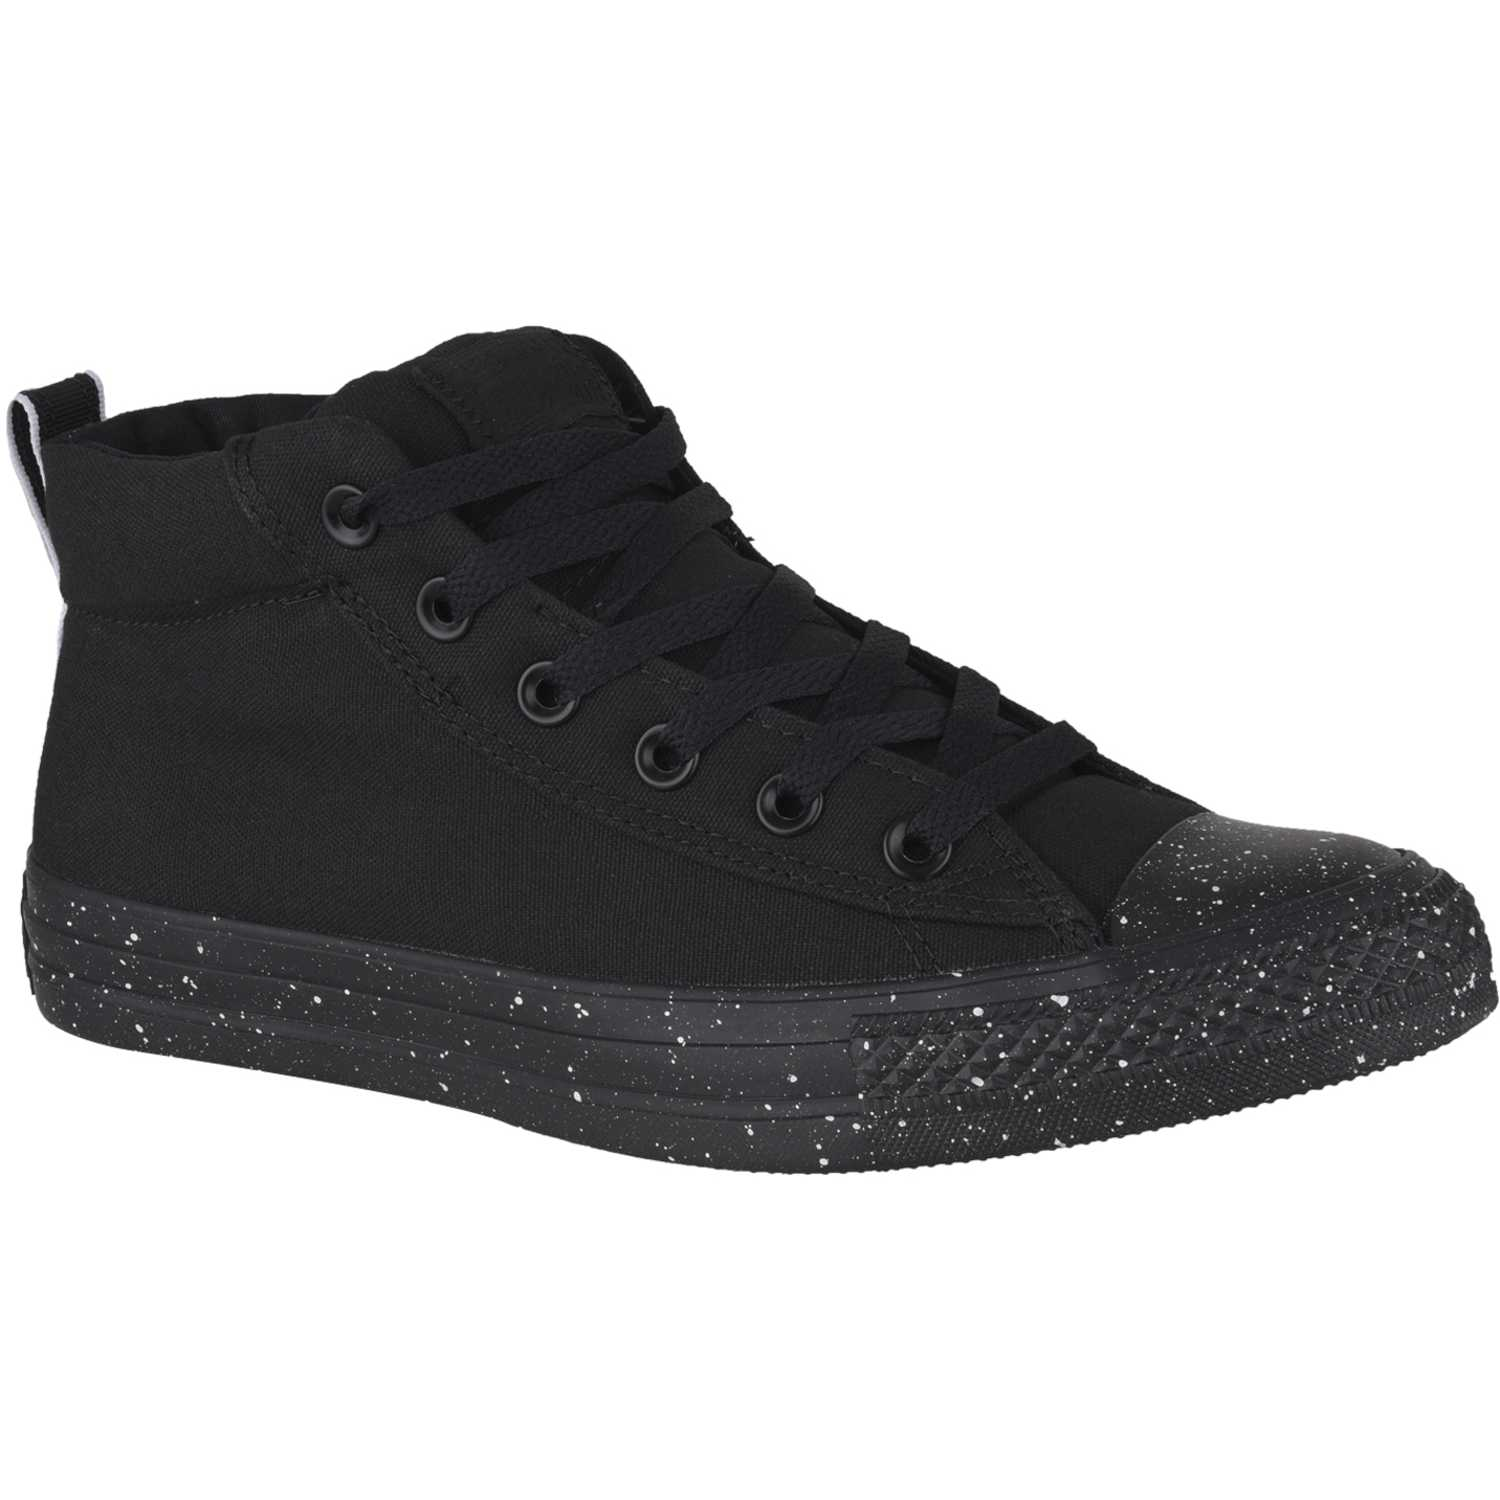 Zapatilla de Hombre Converse Negro / negro ct as street color plus